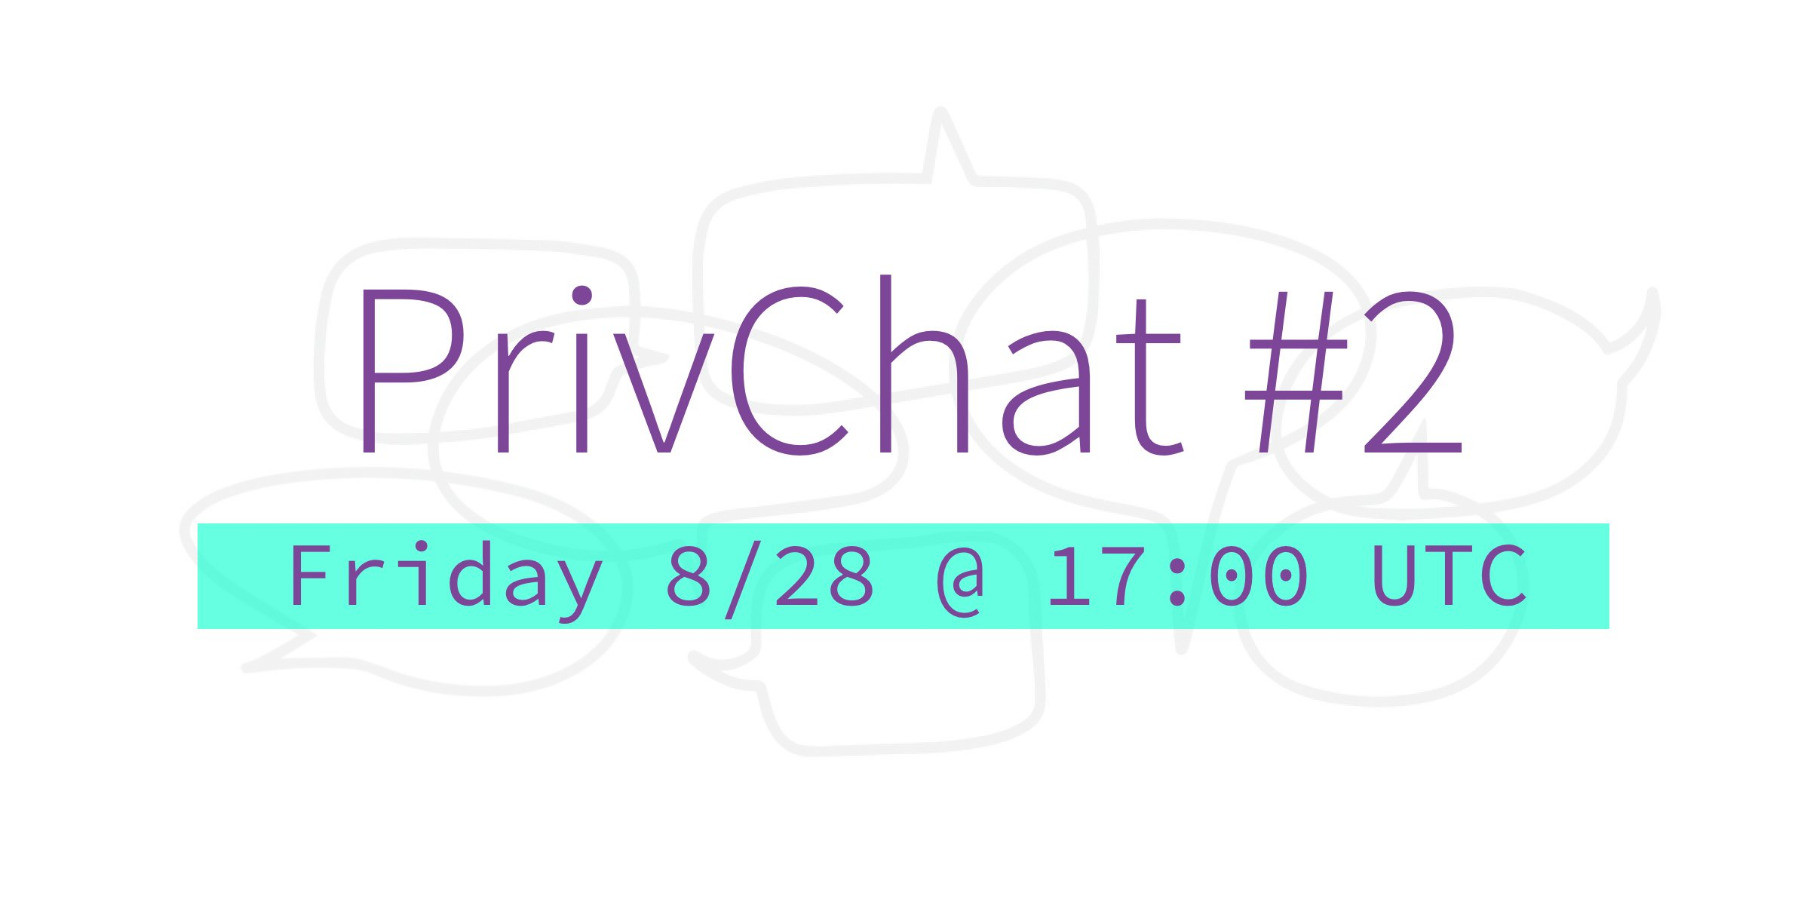 PrivChat tomorrow 17:00UTC on youtube